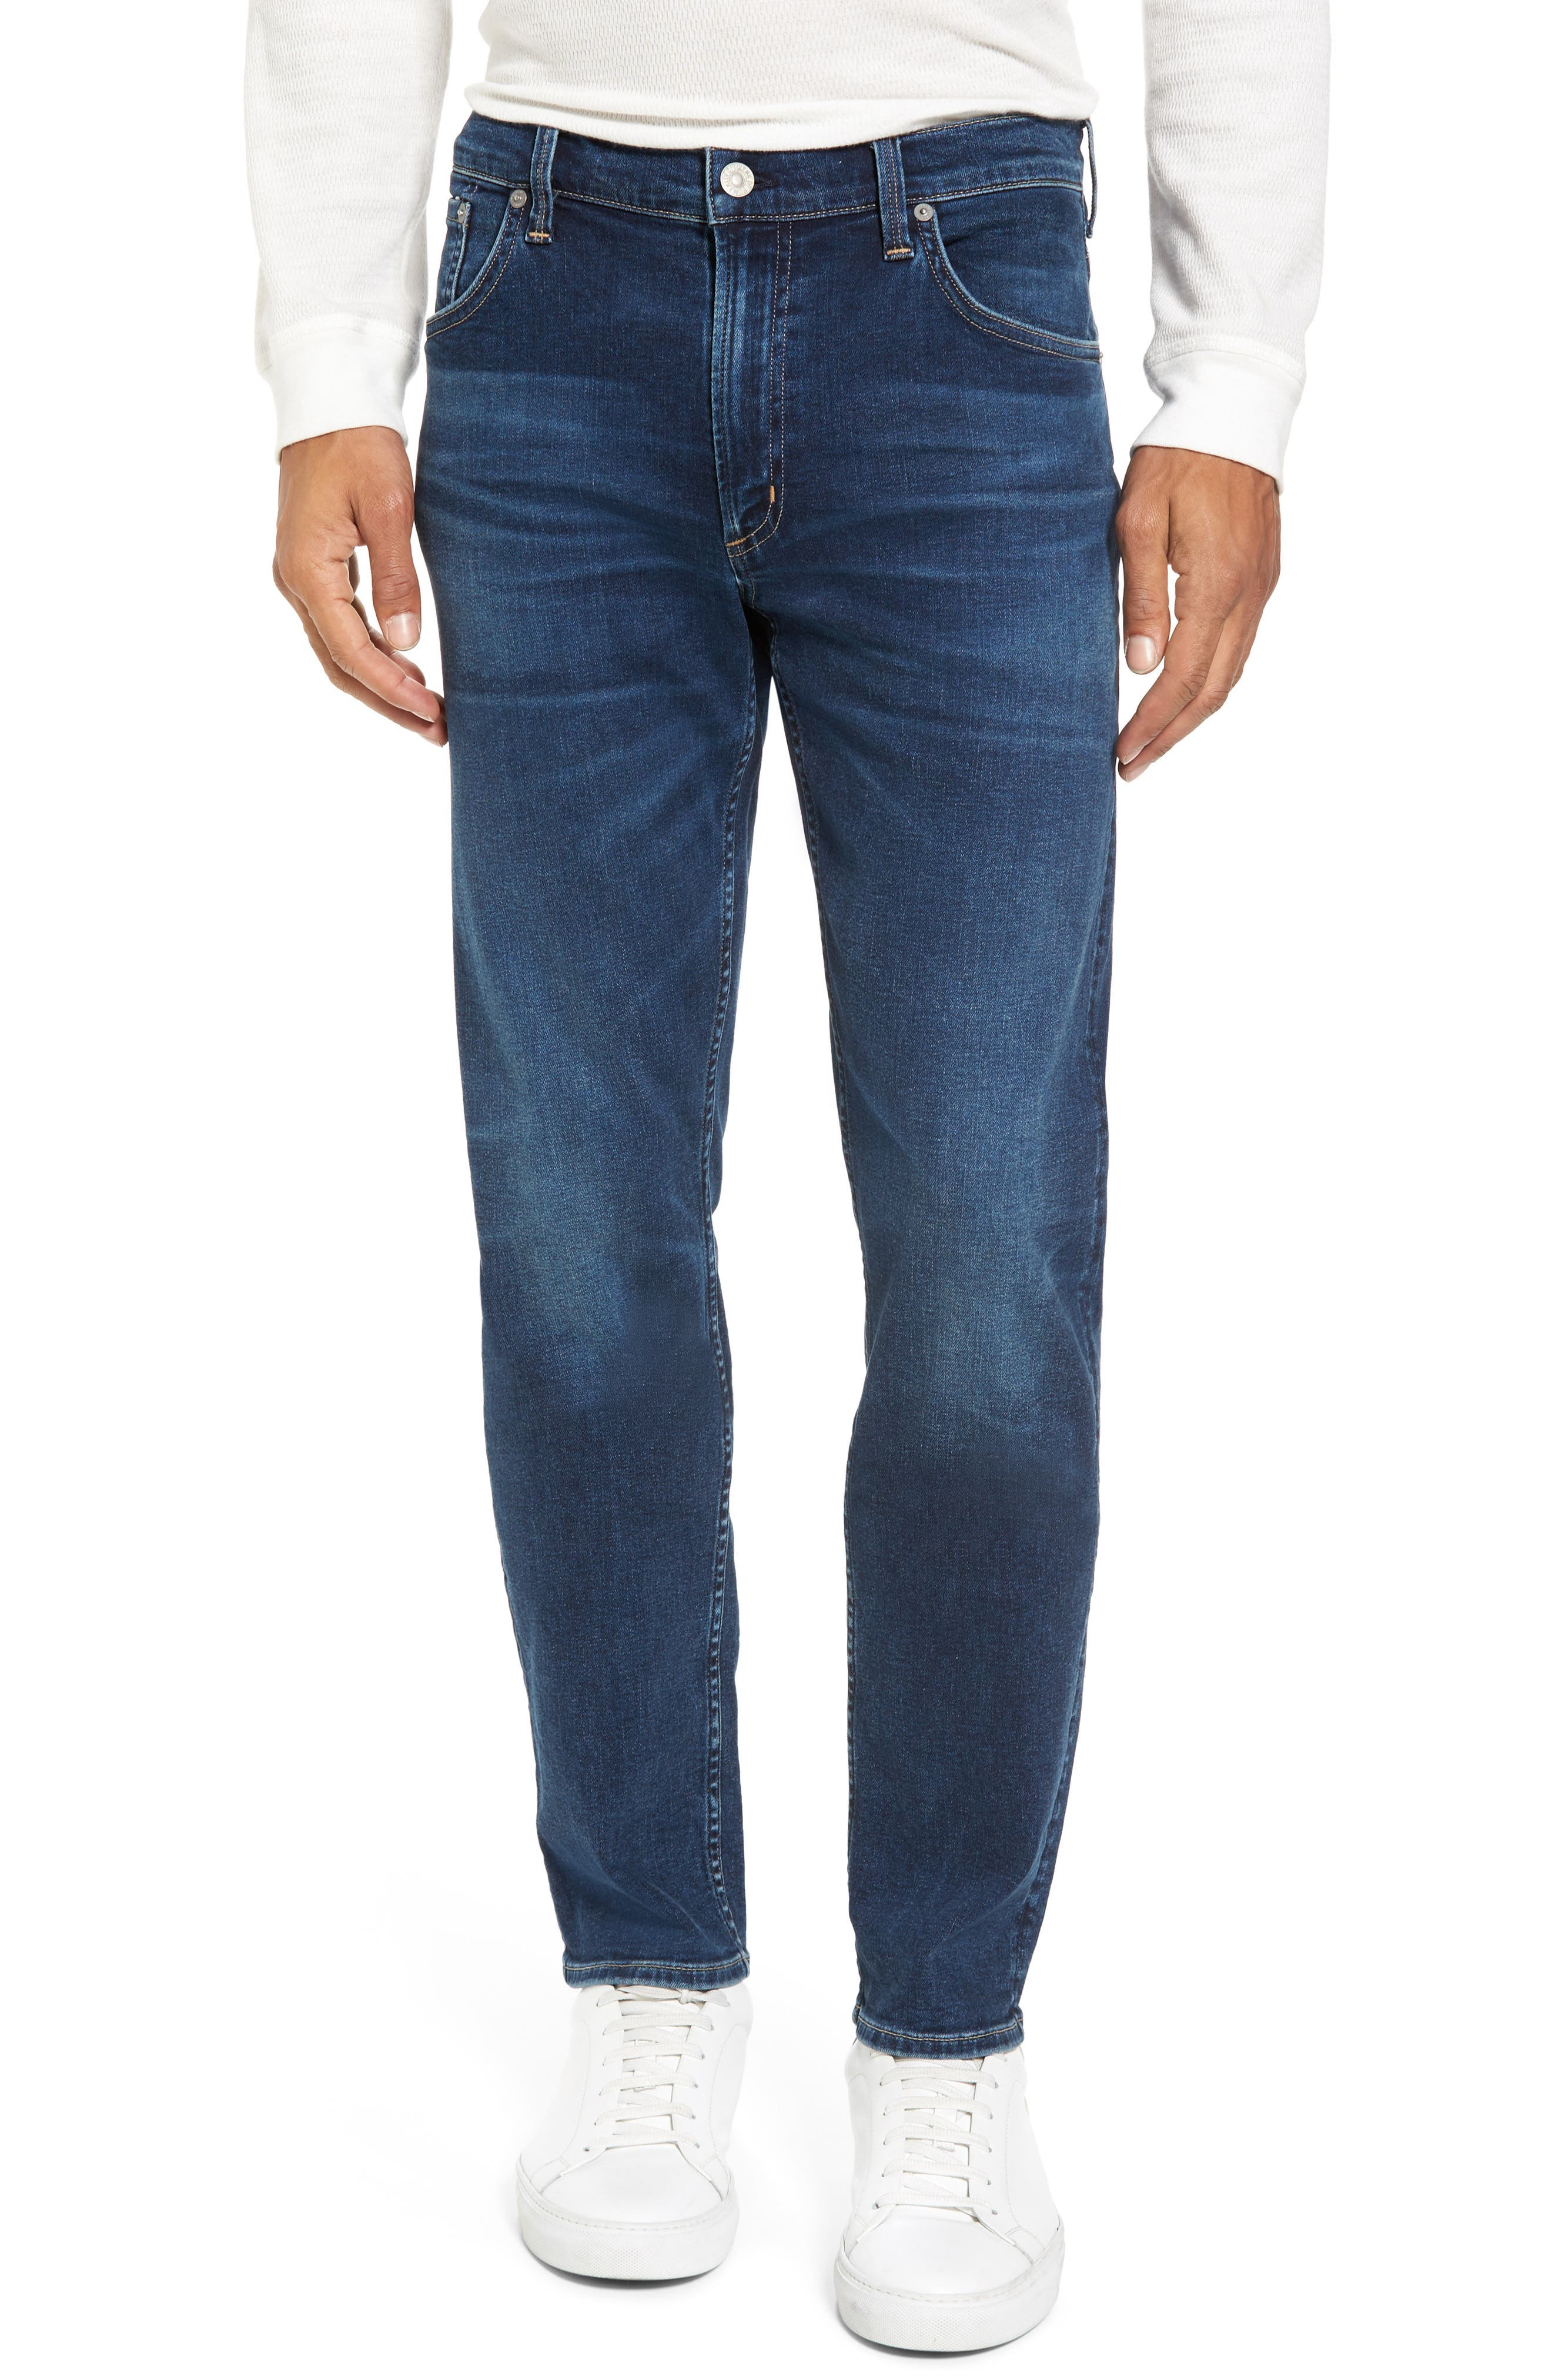 PERFORM - Gage Slim Straight Leg Jeans,                             Main thumbnail 1, color,                             Turner